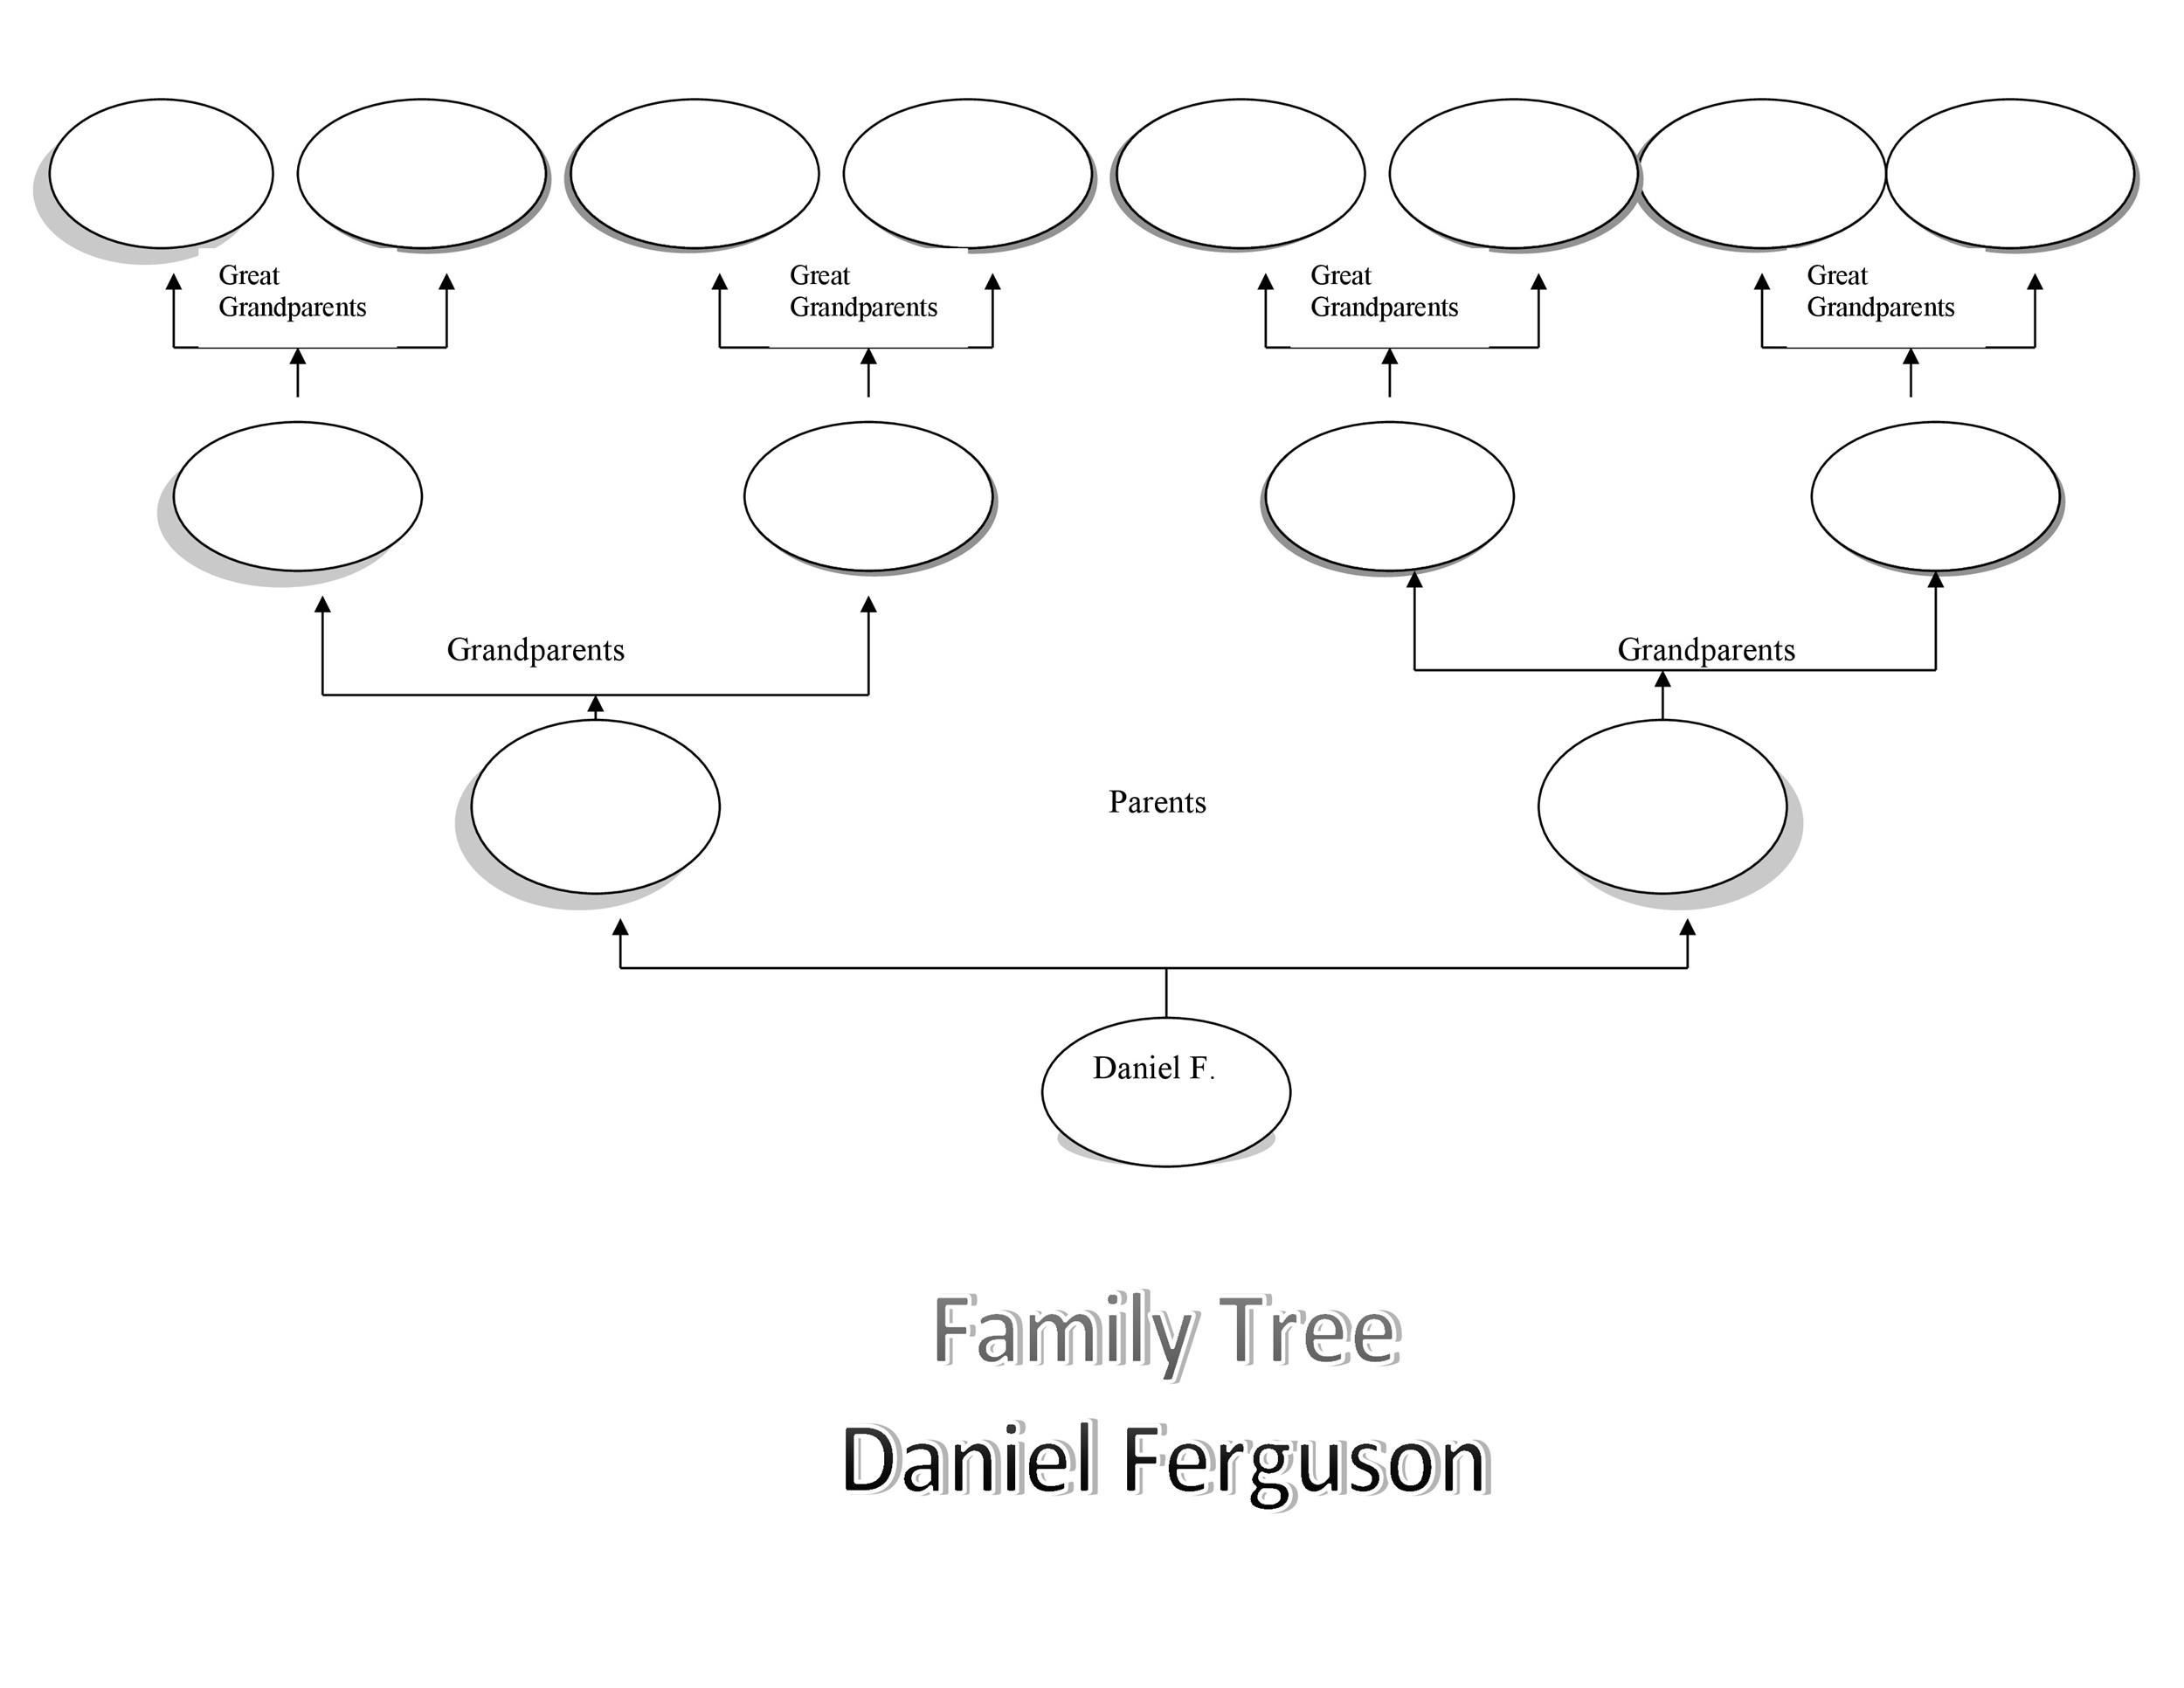 009 Amazing Free Online Family Tree Chart Template High Resolution Full